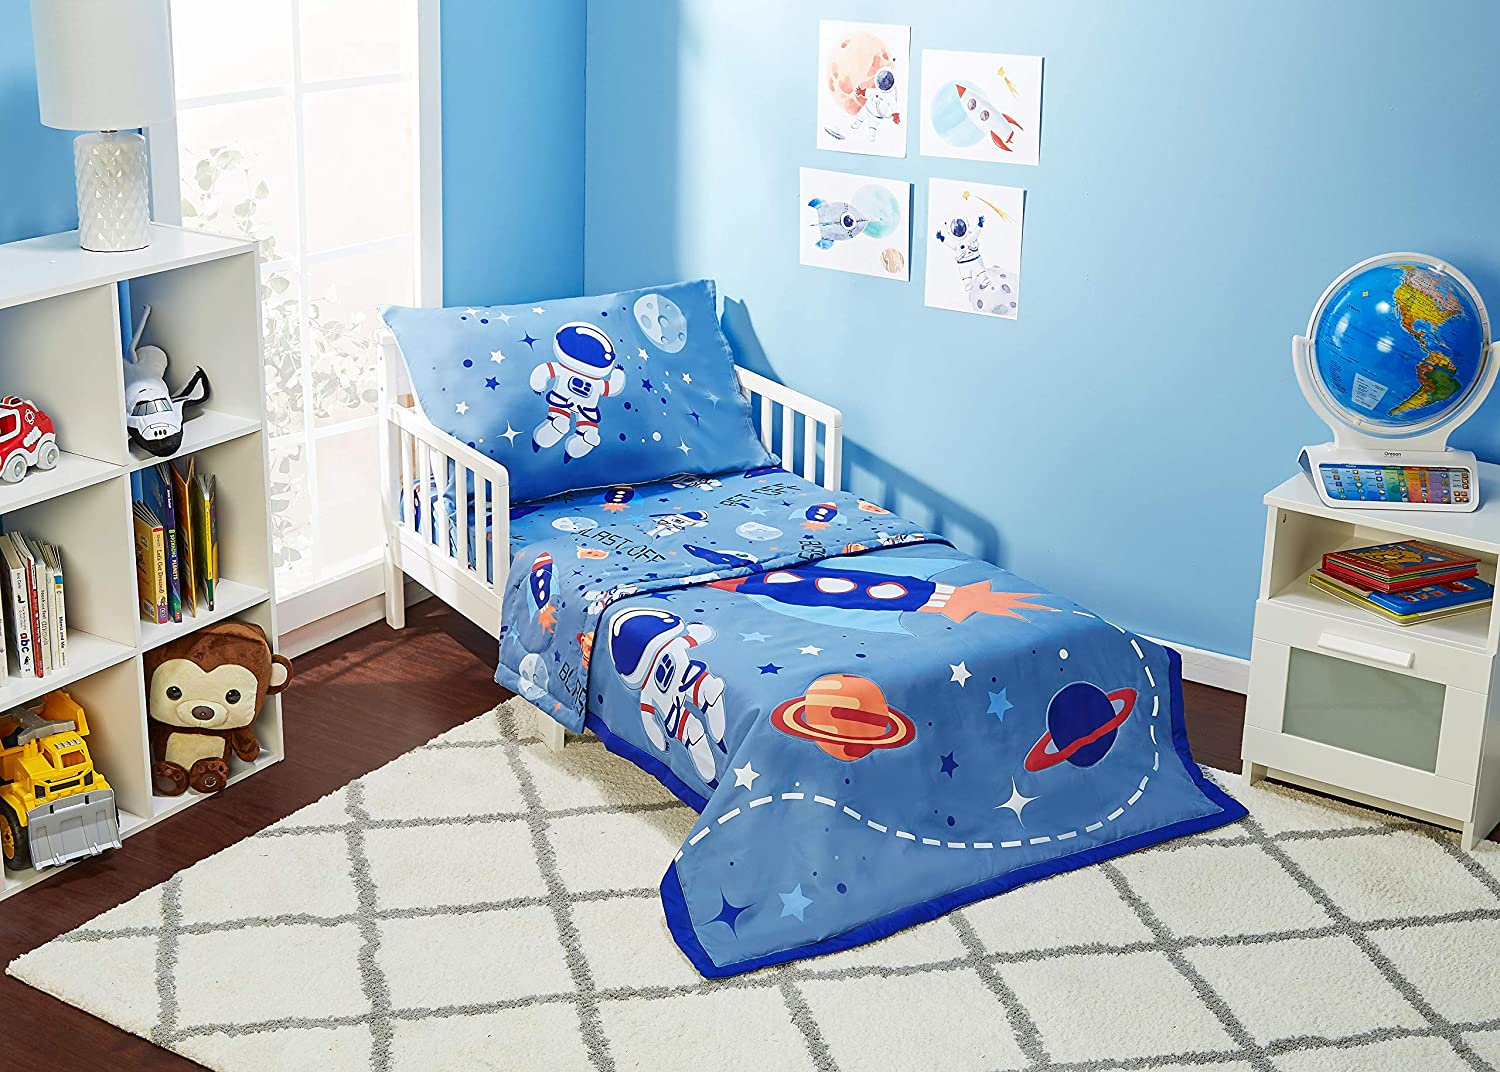 EVERYDAY KIDS 4 Piece Toddler Bedding Set - Outer Space Adventures - Includes Comforter, Flat Sheet, Fitted Sheet and Reversible Pillowcase